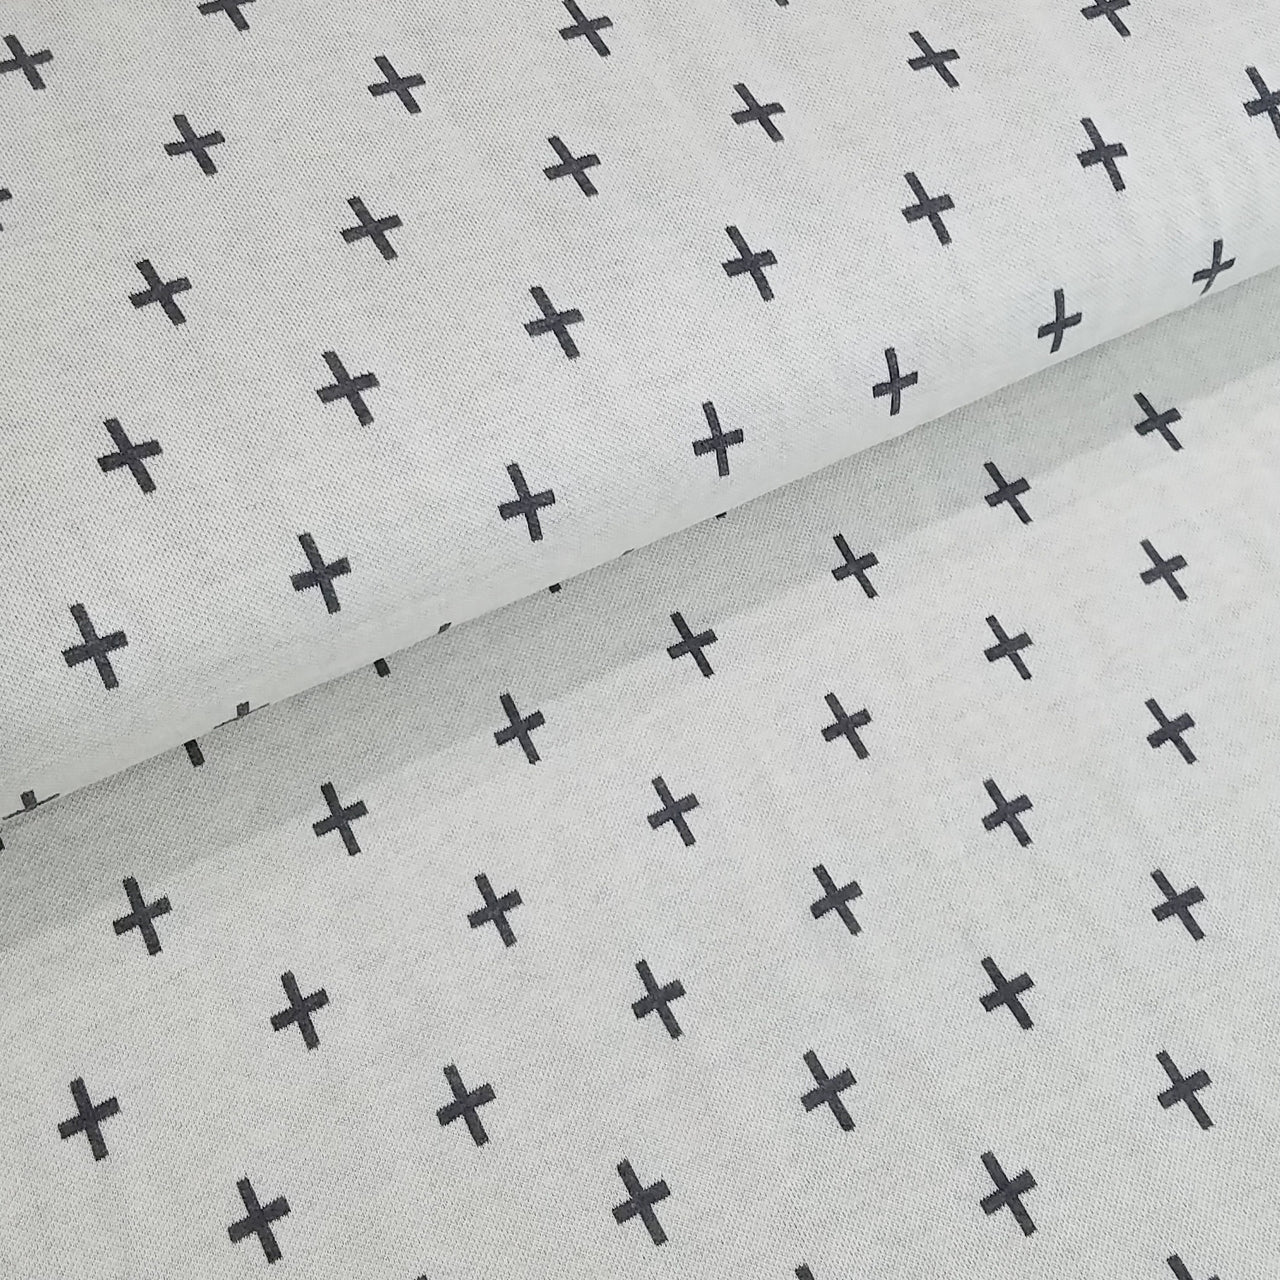 Mono Criss Cross Organic Jacquard, White-Gray by Albstoffe